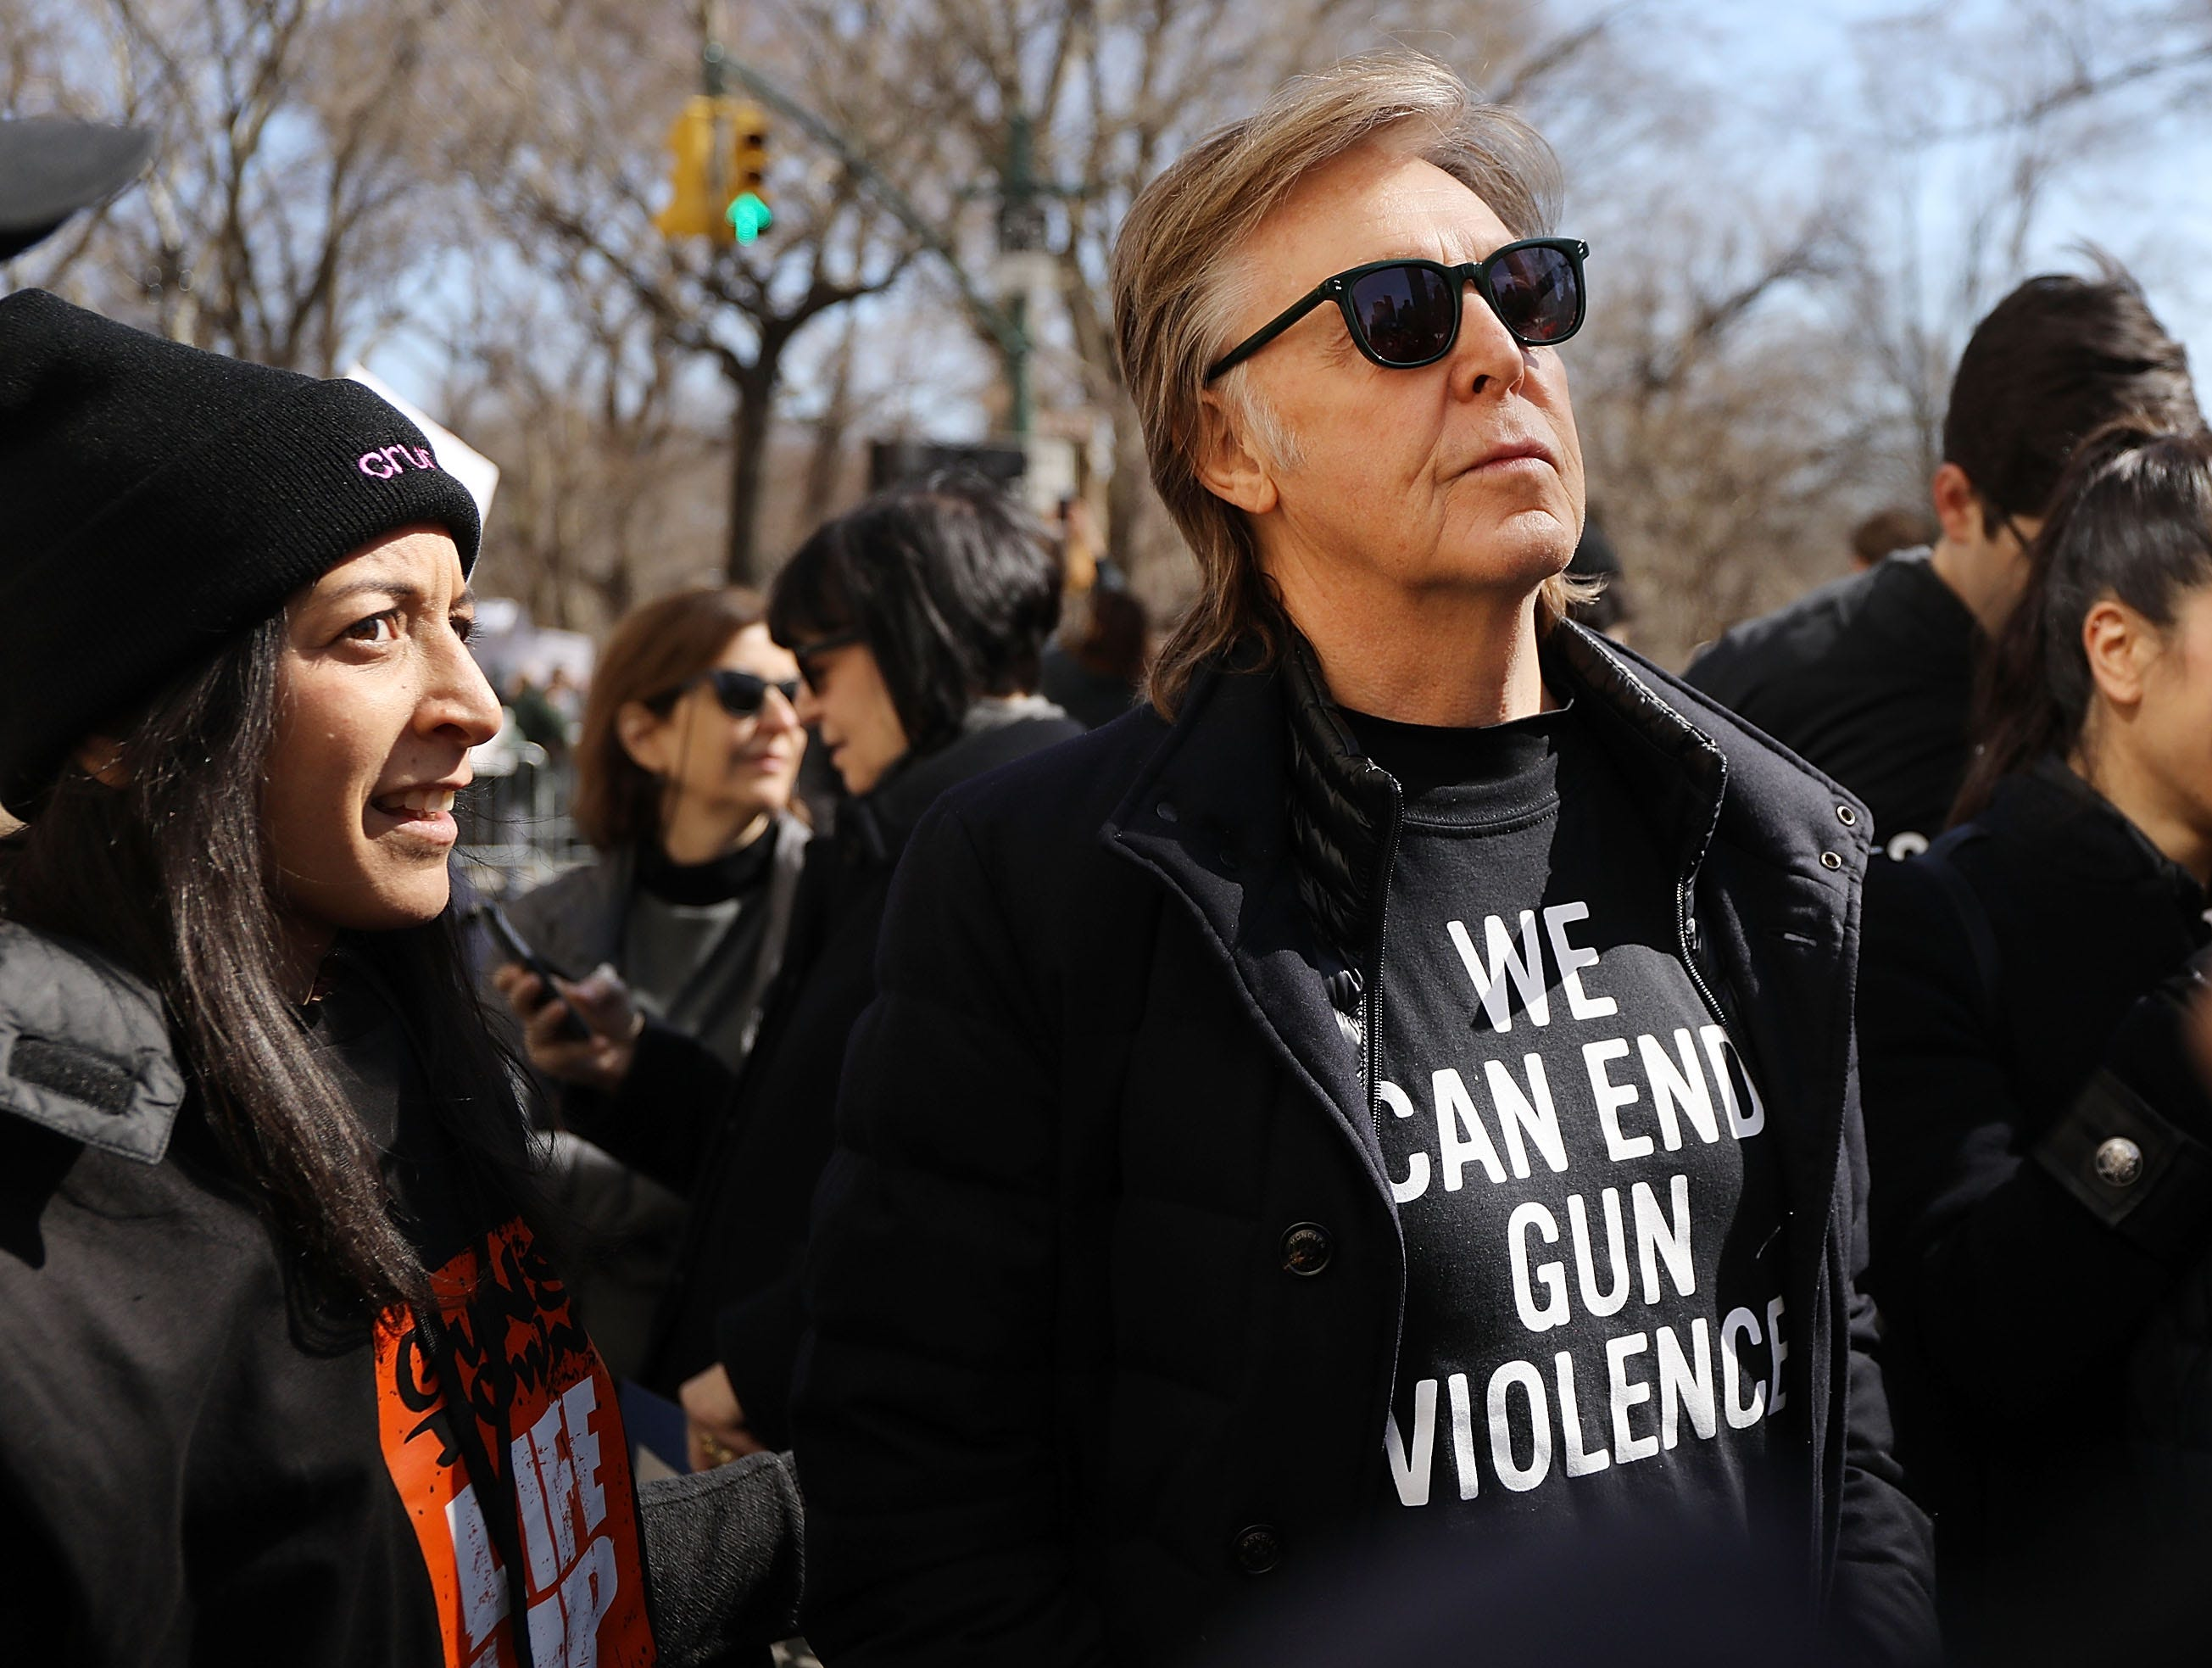 NEW YORK, NY - MARCH 24:  Sir Paul McCartney joins thousands of people, many of them students, march against gun violence in Manhattan during the March for Our Lives rally on March 24, 2018 in New York, United States. More than 800 March for Our Lives events, organized by survivors of the Parkland, Florida school shooting on February 14 that left 17 dead, are taking place around the world to call for legislative action to address school safety and gun violence.  (Photo by Spencer Platt/Getty Images) ORG XMIT: 775145471 ORIG FILE ID: 937355656